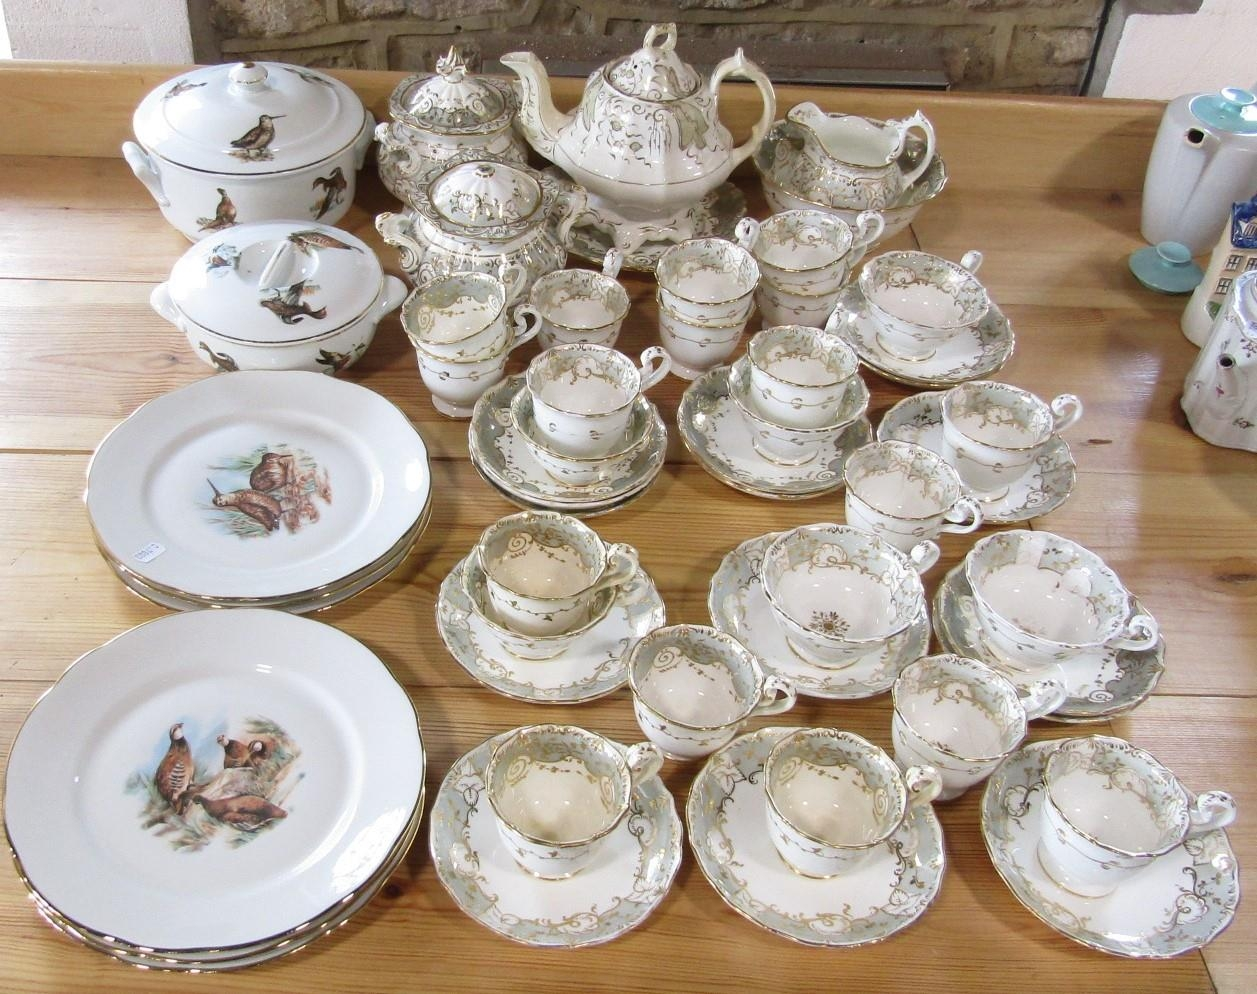 A quantity of Victorian tea wares with grey and gilt border decoration including a pair of covered - Bild 2 aus 3